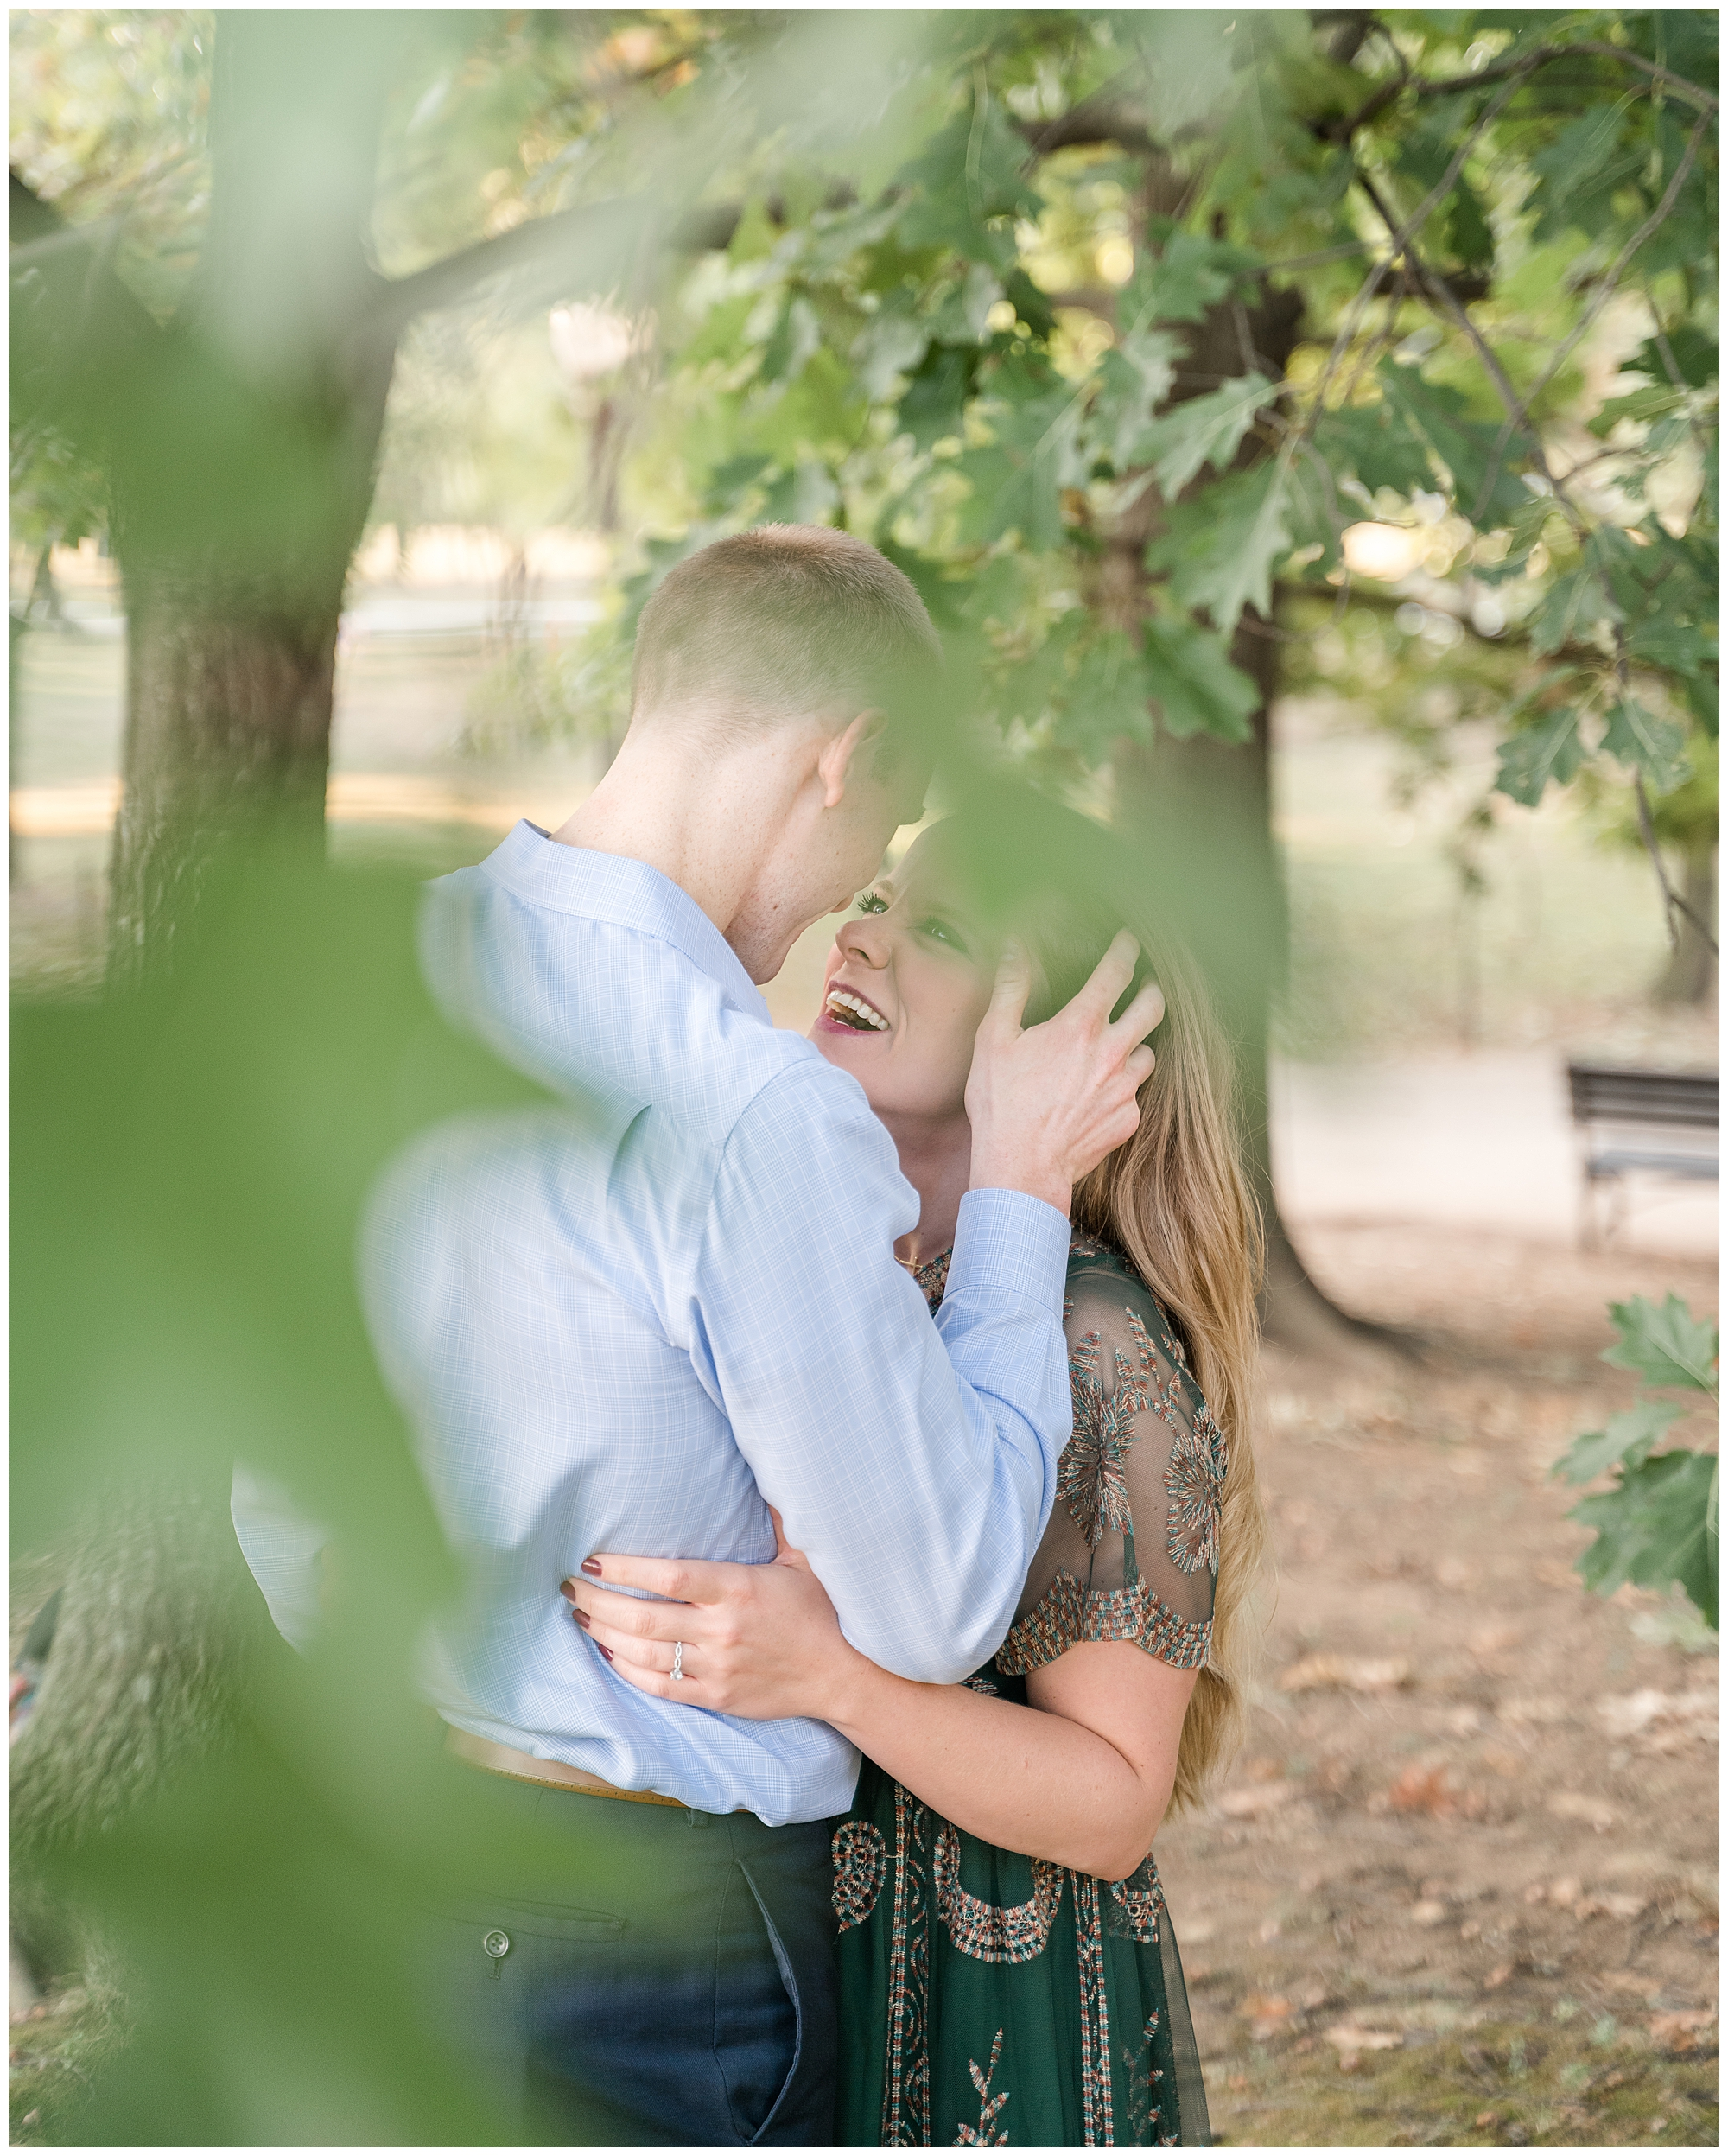 A man touches his fiancée's hair as they look at each other during their engagement session.